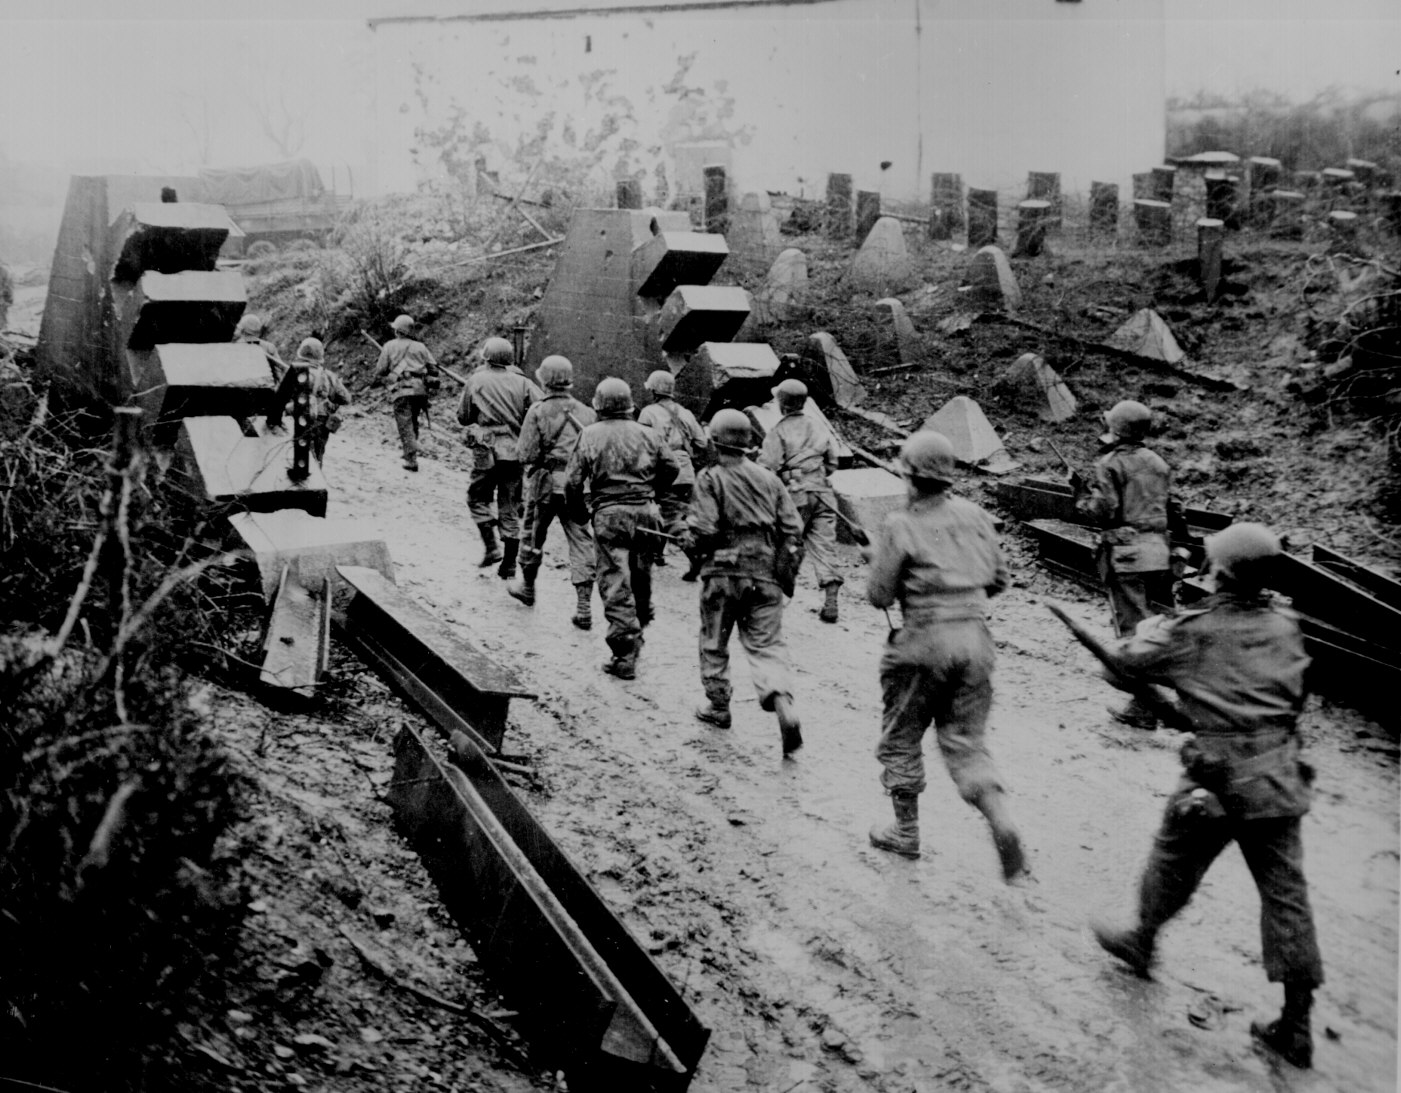 picture of US troops marching into Germany This picture is from the